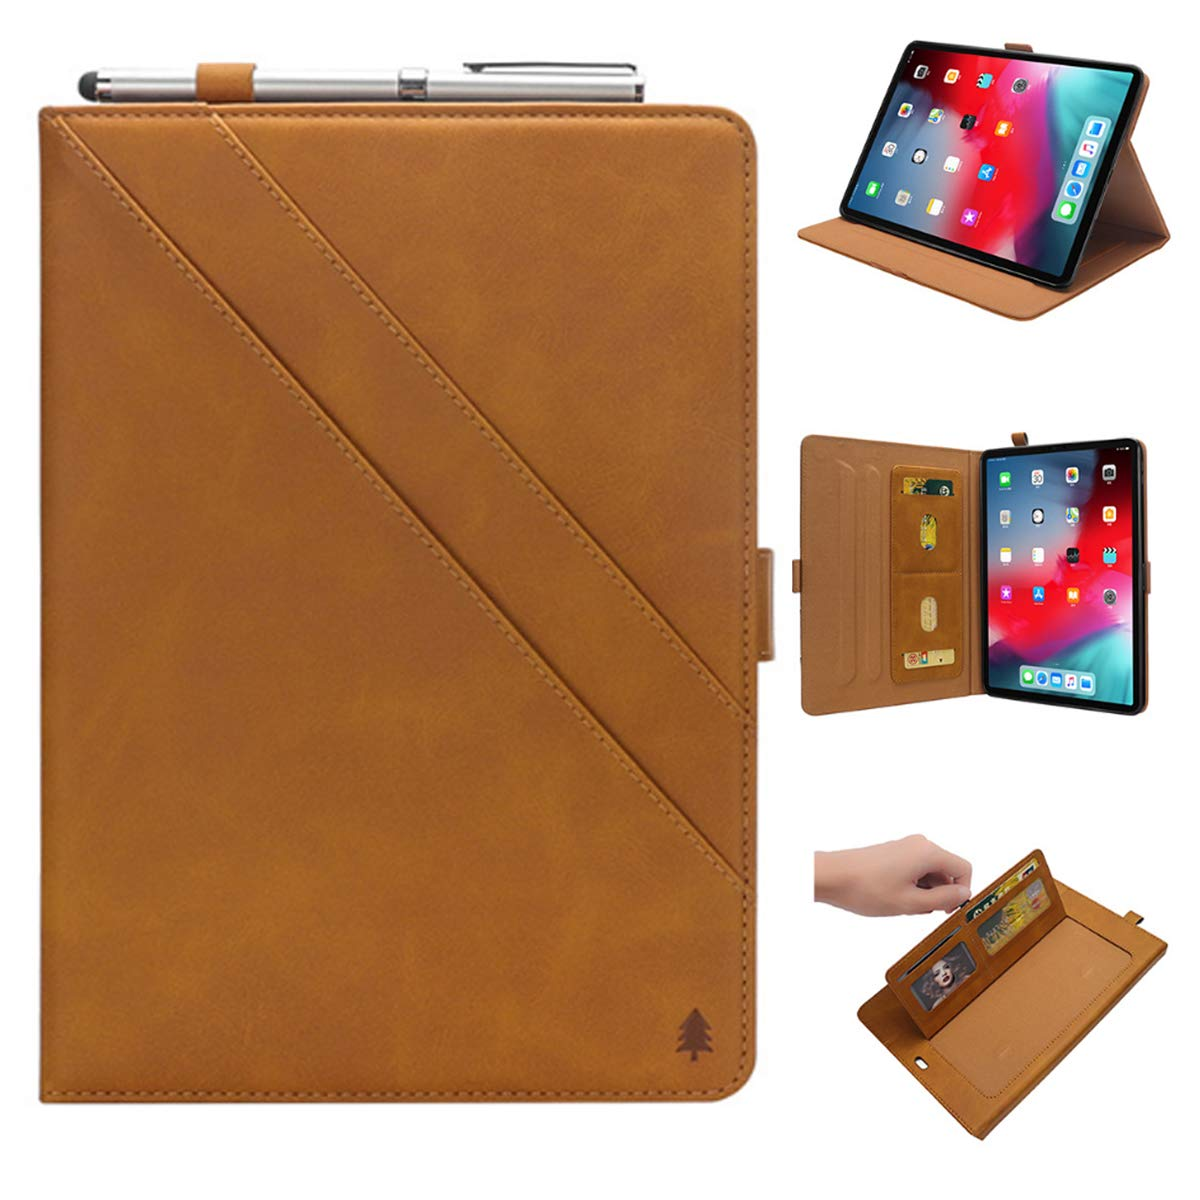 iPad 6th Generation Cases with Pencil Holder, Premium PU Leather Folio Case Soft TPU Back Protective Stand Cover with Card Slots for iPad 9.7 Inch 2018 (6th Gen) / iPad 9.7'' 2017 (5th Gen) –Khaki